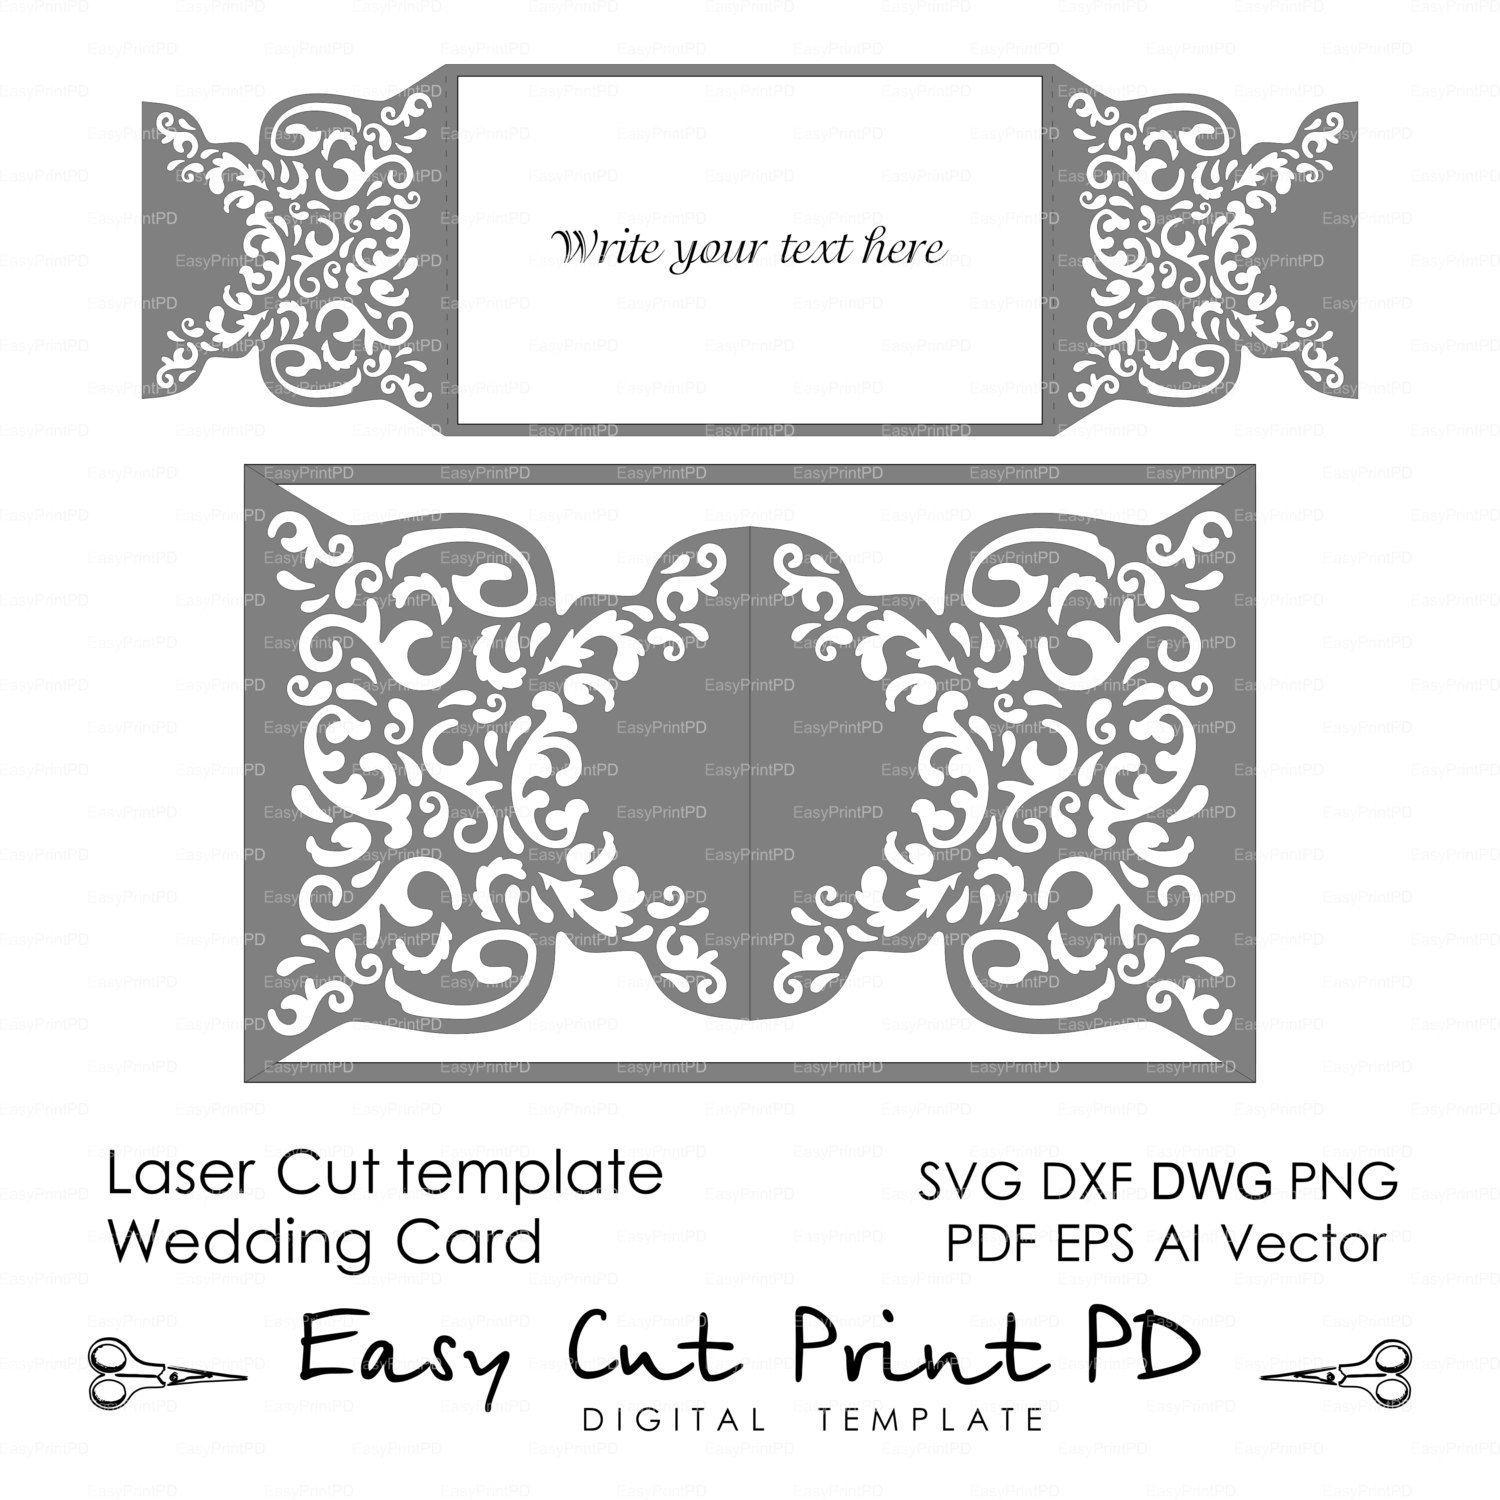 Wedding invitation pattern card template shutters gates doors lace wedding invitation pattern card template shutters gates doors lace folds svg dxf ai eps png stopboris Choice Image